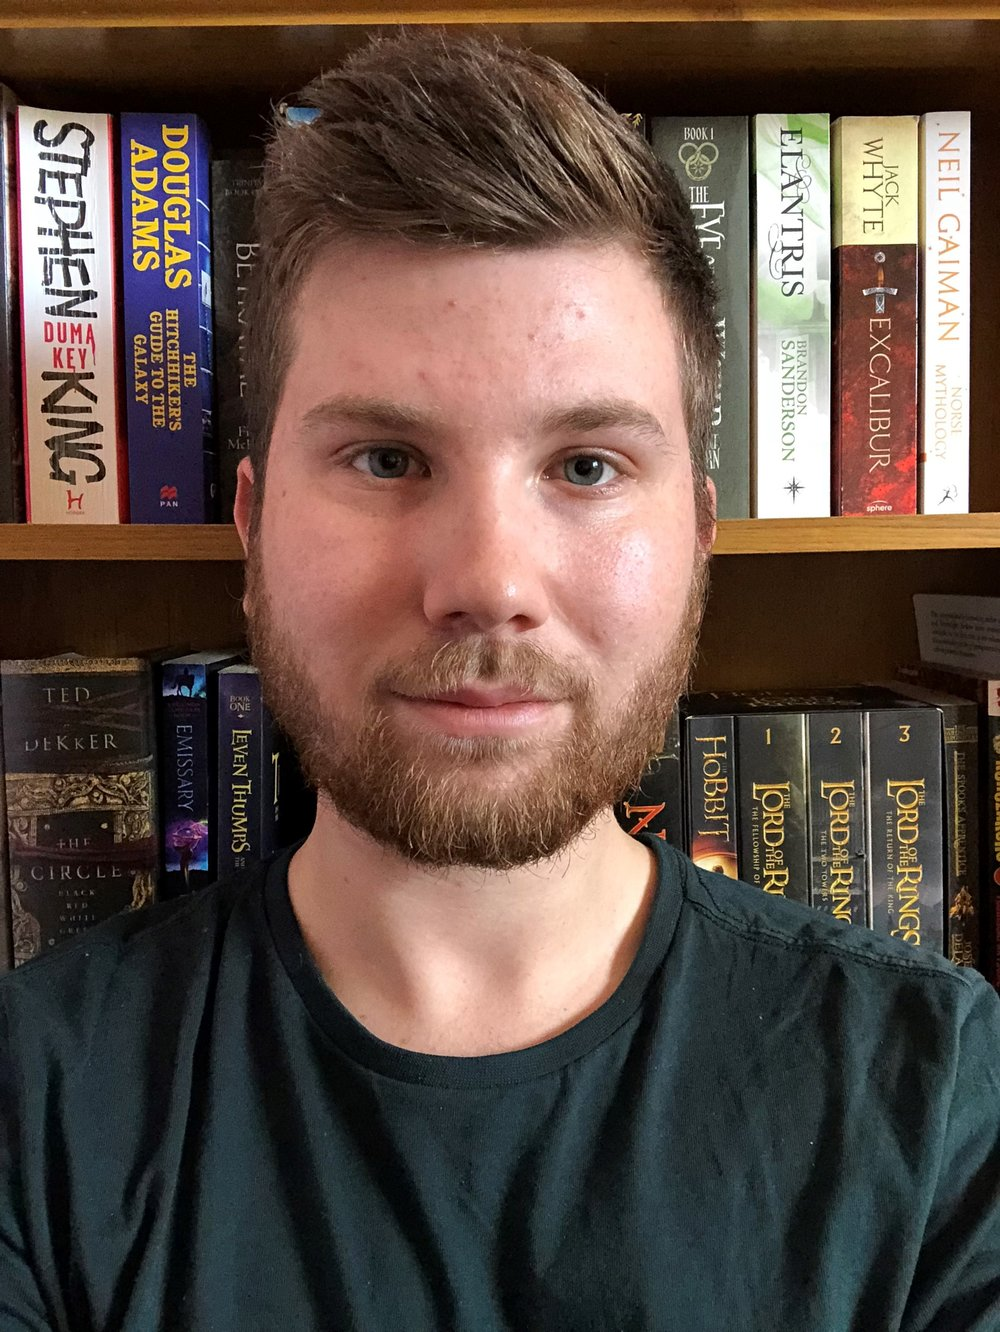 Daniel R graham is a writer of serial fiction, including  Sonder Stories  &  White Stag Trails . He also runs a Brand Developing Business call  Lion's Den Freelance.